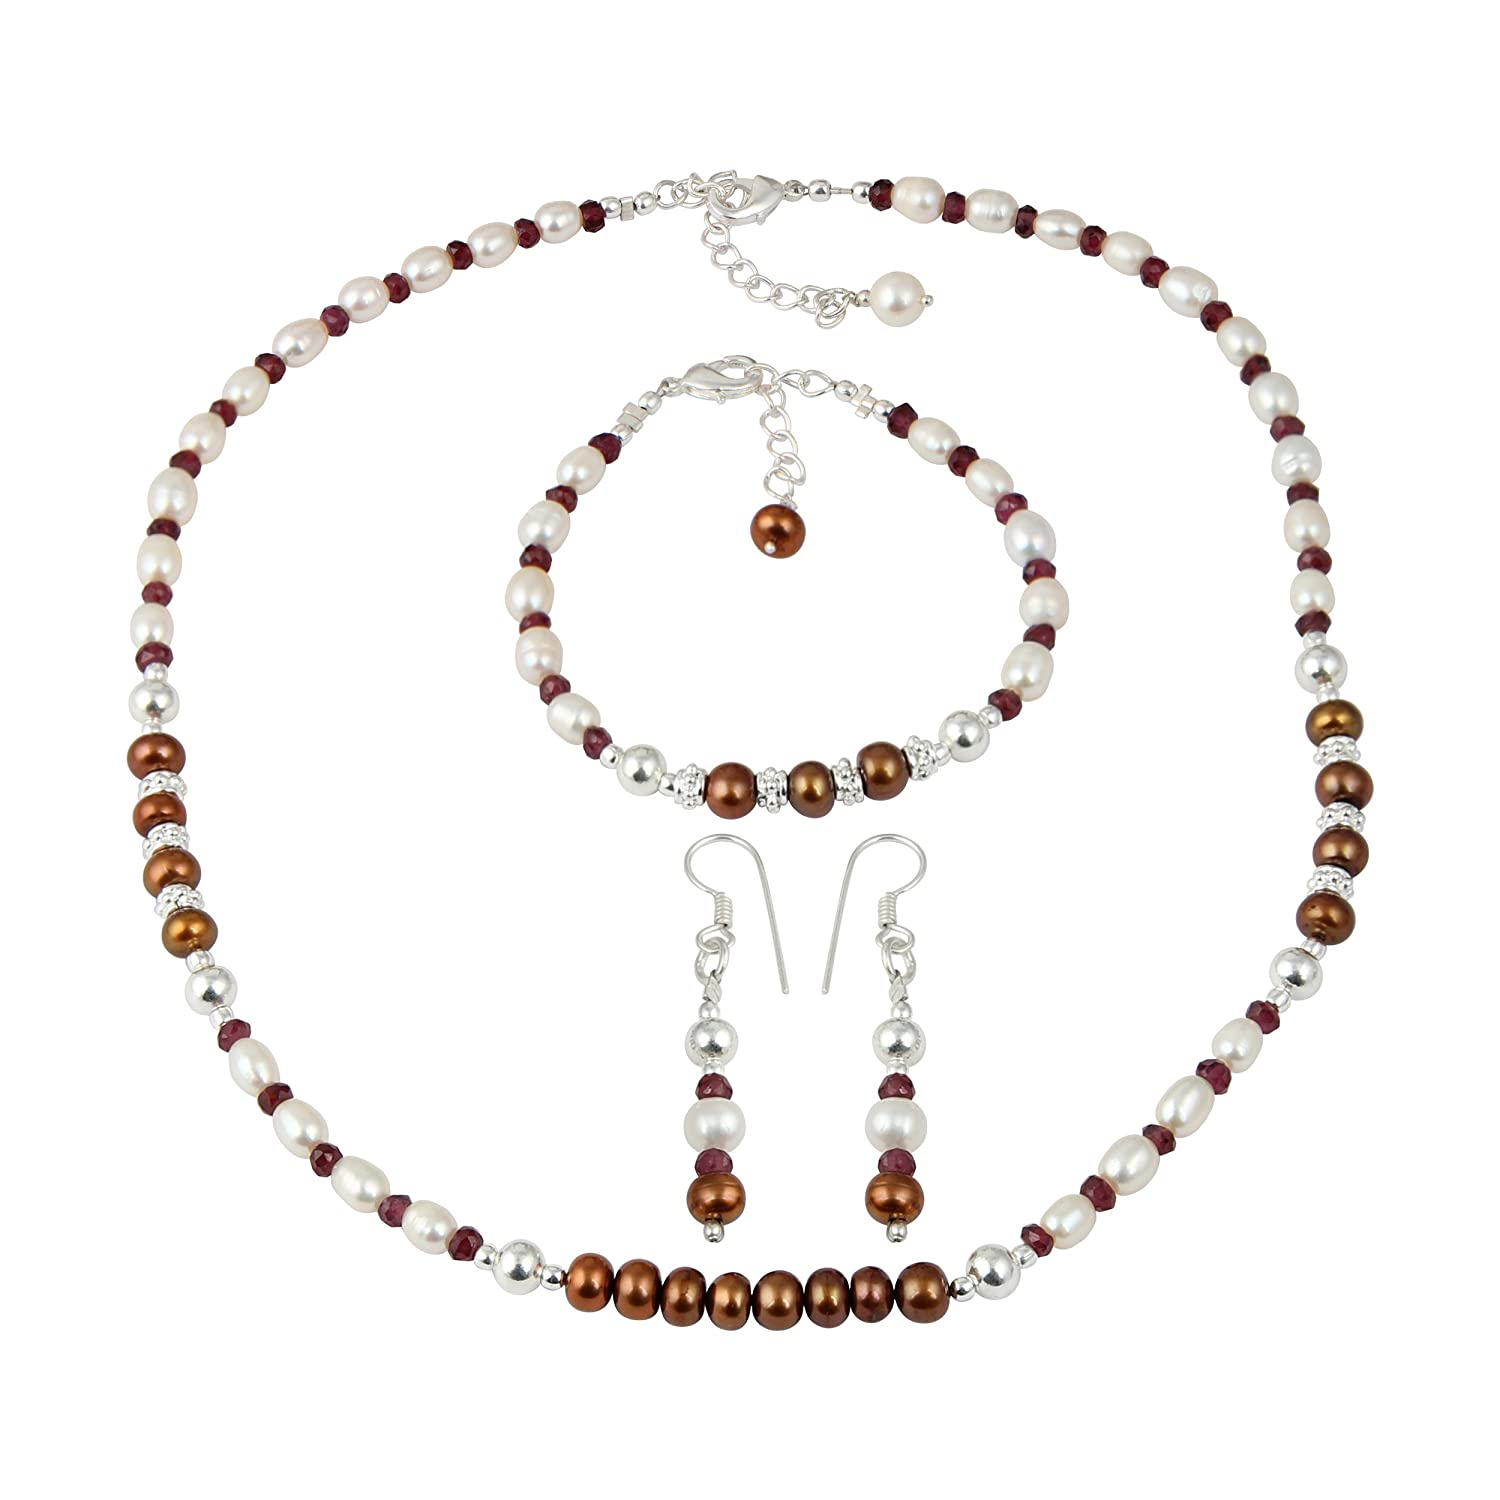 Rhodolite Garnet Dyed Chocolate Cultured Freshwater Pearl Fashion Necklace Earrings Bracelet Jewelry Set